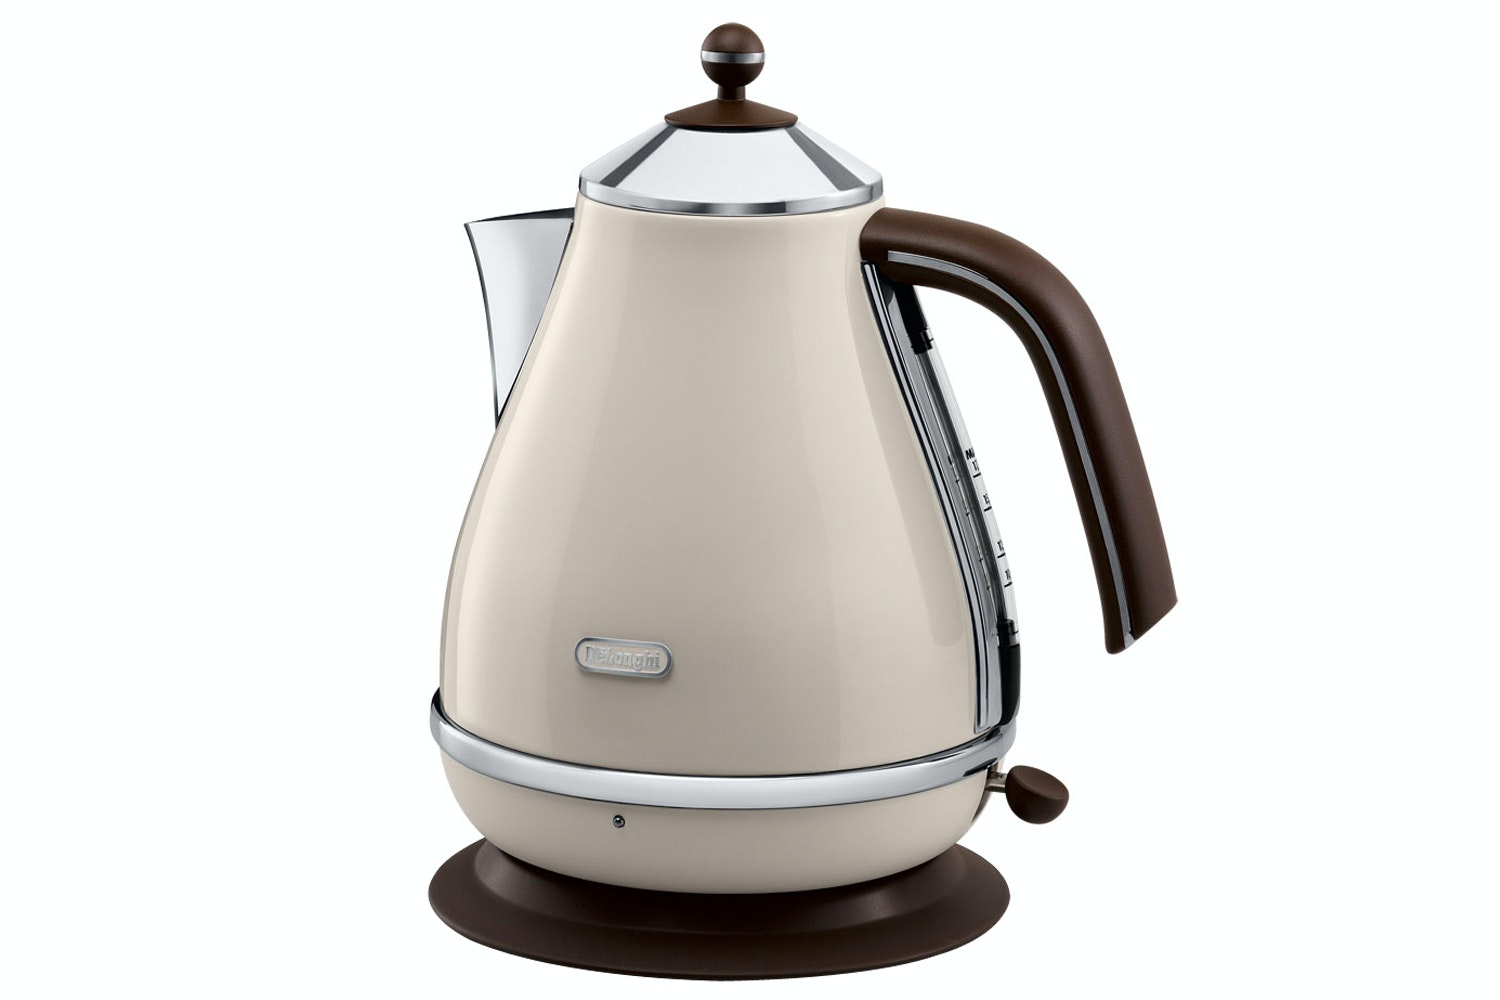 DeLonghi 1.7L Vintage Kettle  Cream